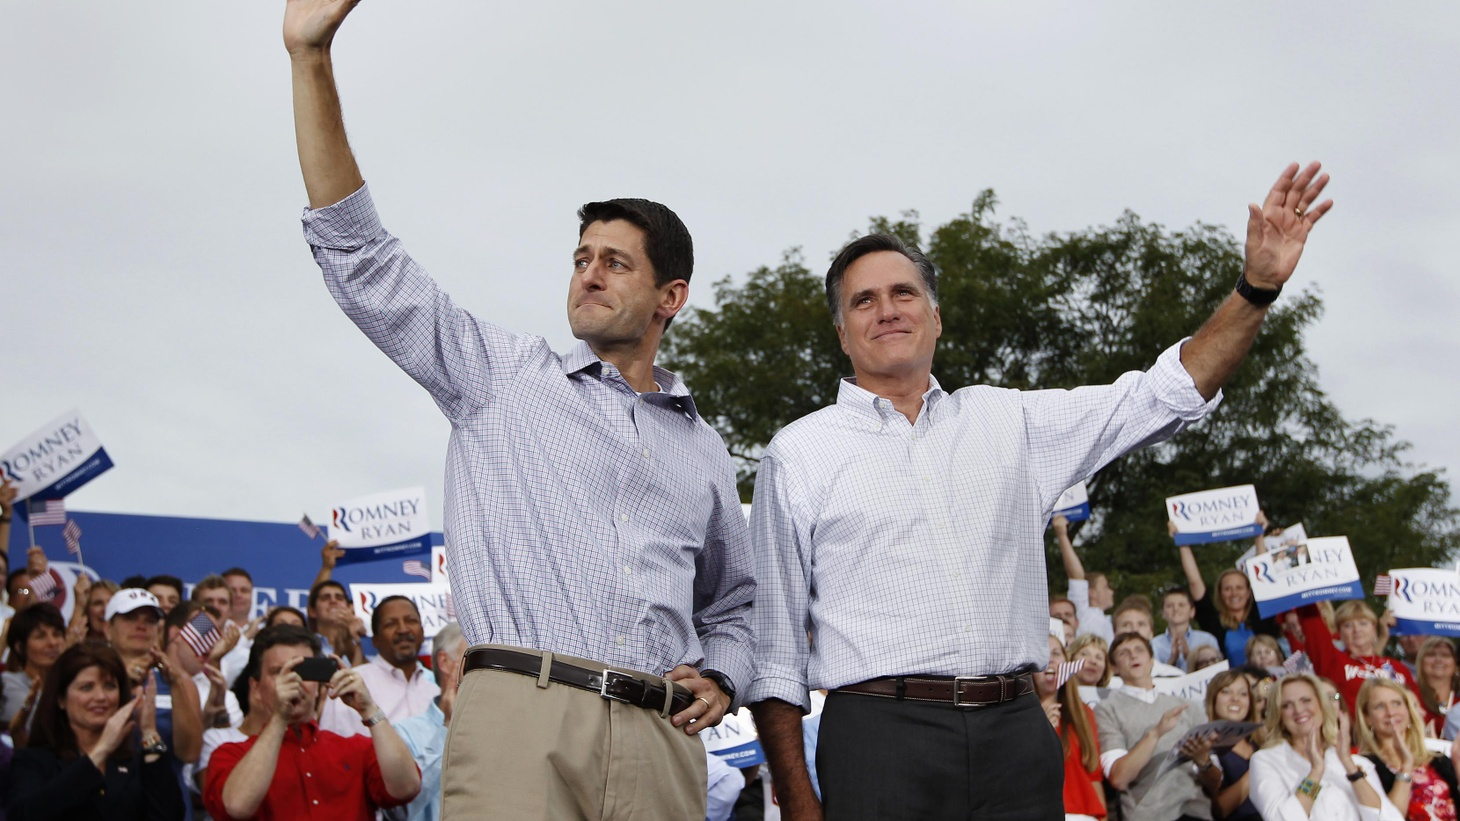 Will Paul Ryan Change the Nature of the Presidential Campaign? Mitt Romney's choice of running mate has invigorated both Republicans and Democrats. Also, Egyptian President purges top military leaders and we'll take a look at the United Kingdom, after the London Olympics.